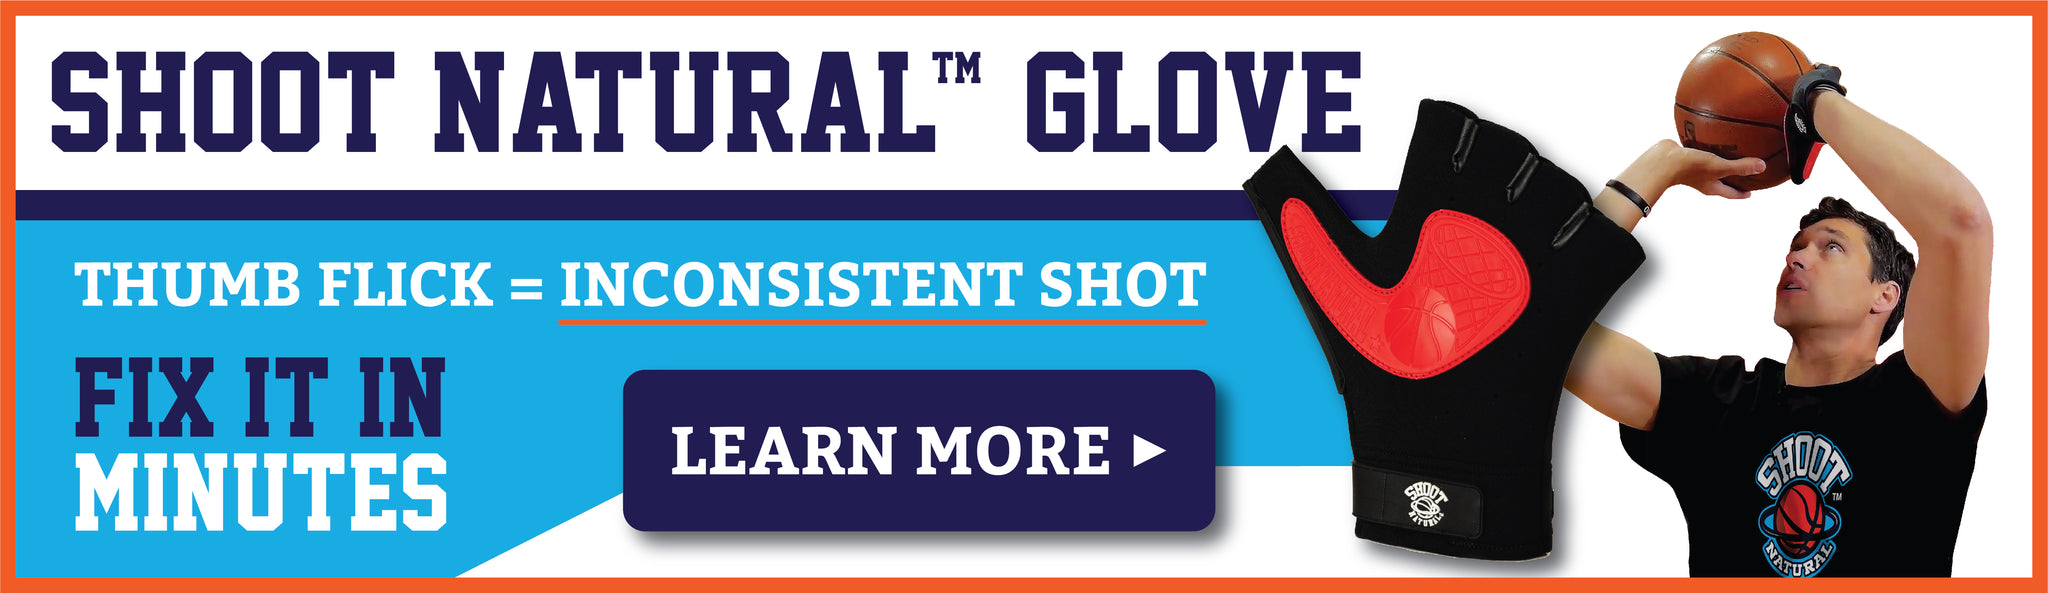 Shoot Natural Glove | Fix inconsistent basketball shot